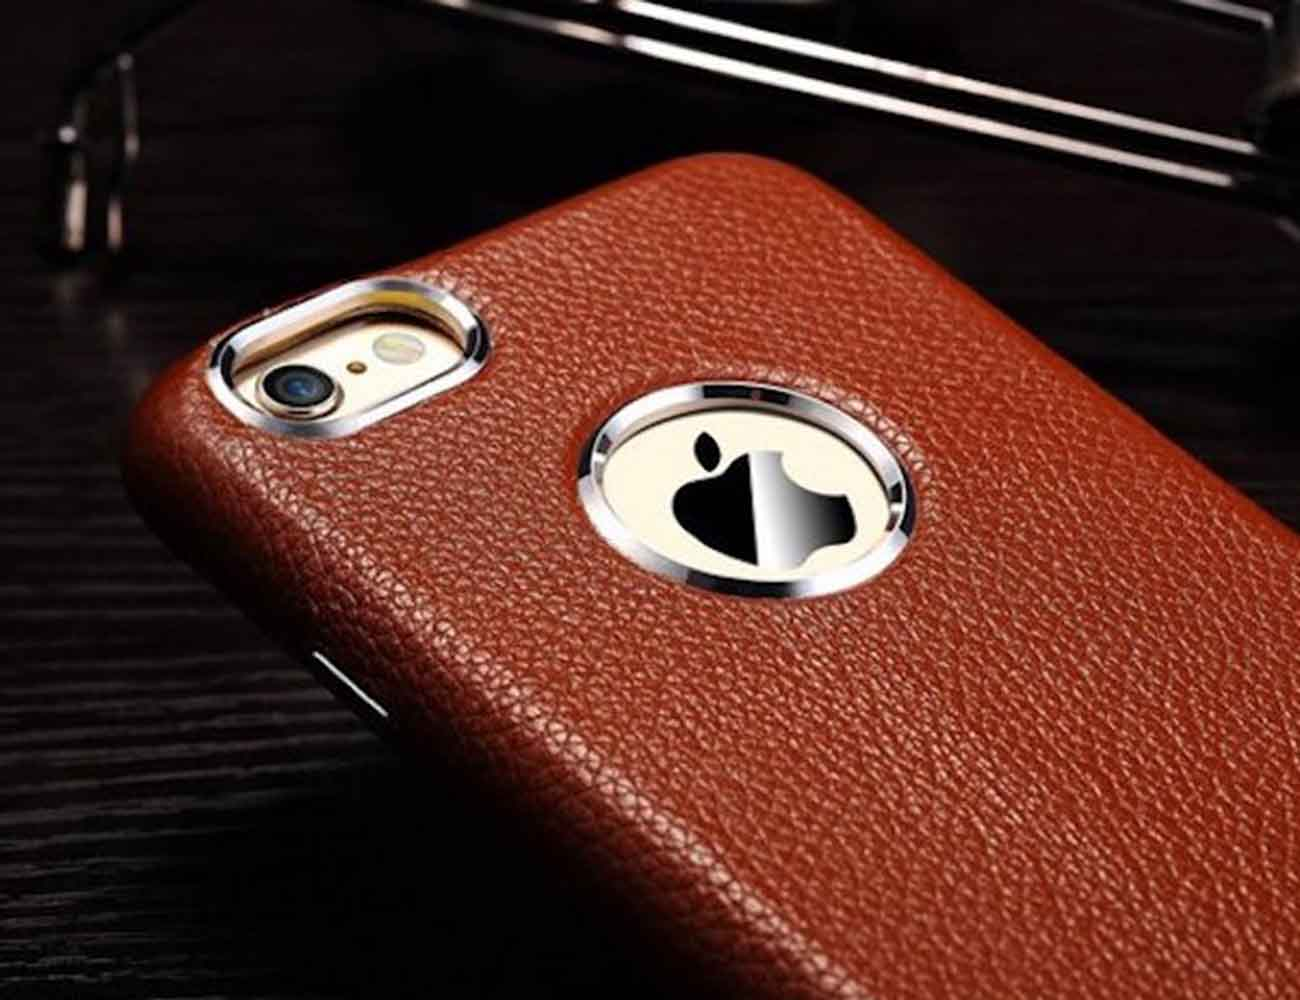 Leather iPhone Case by Linlins